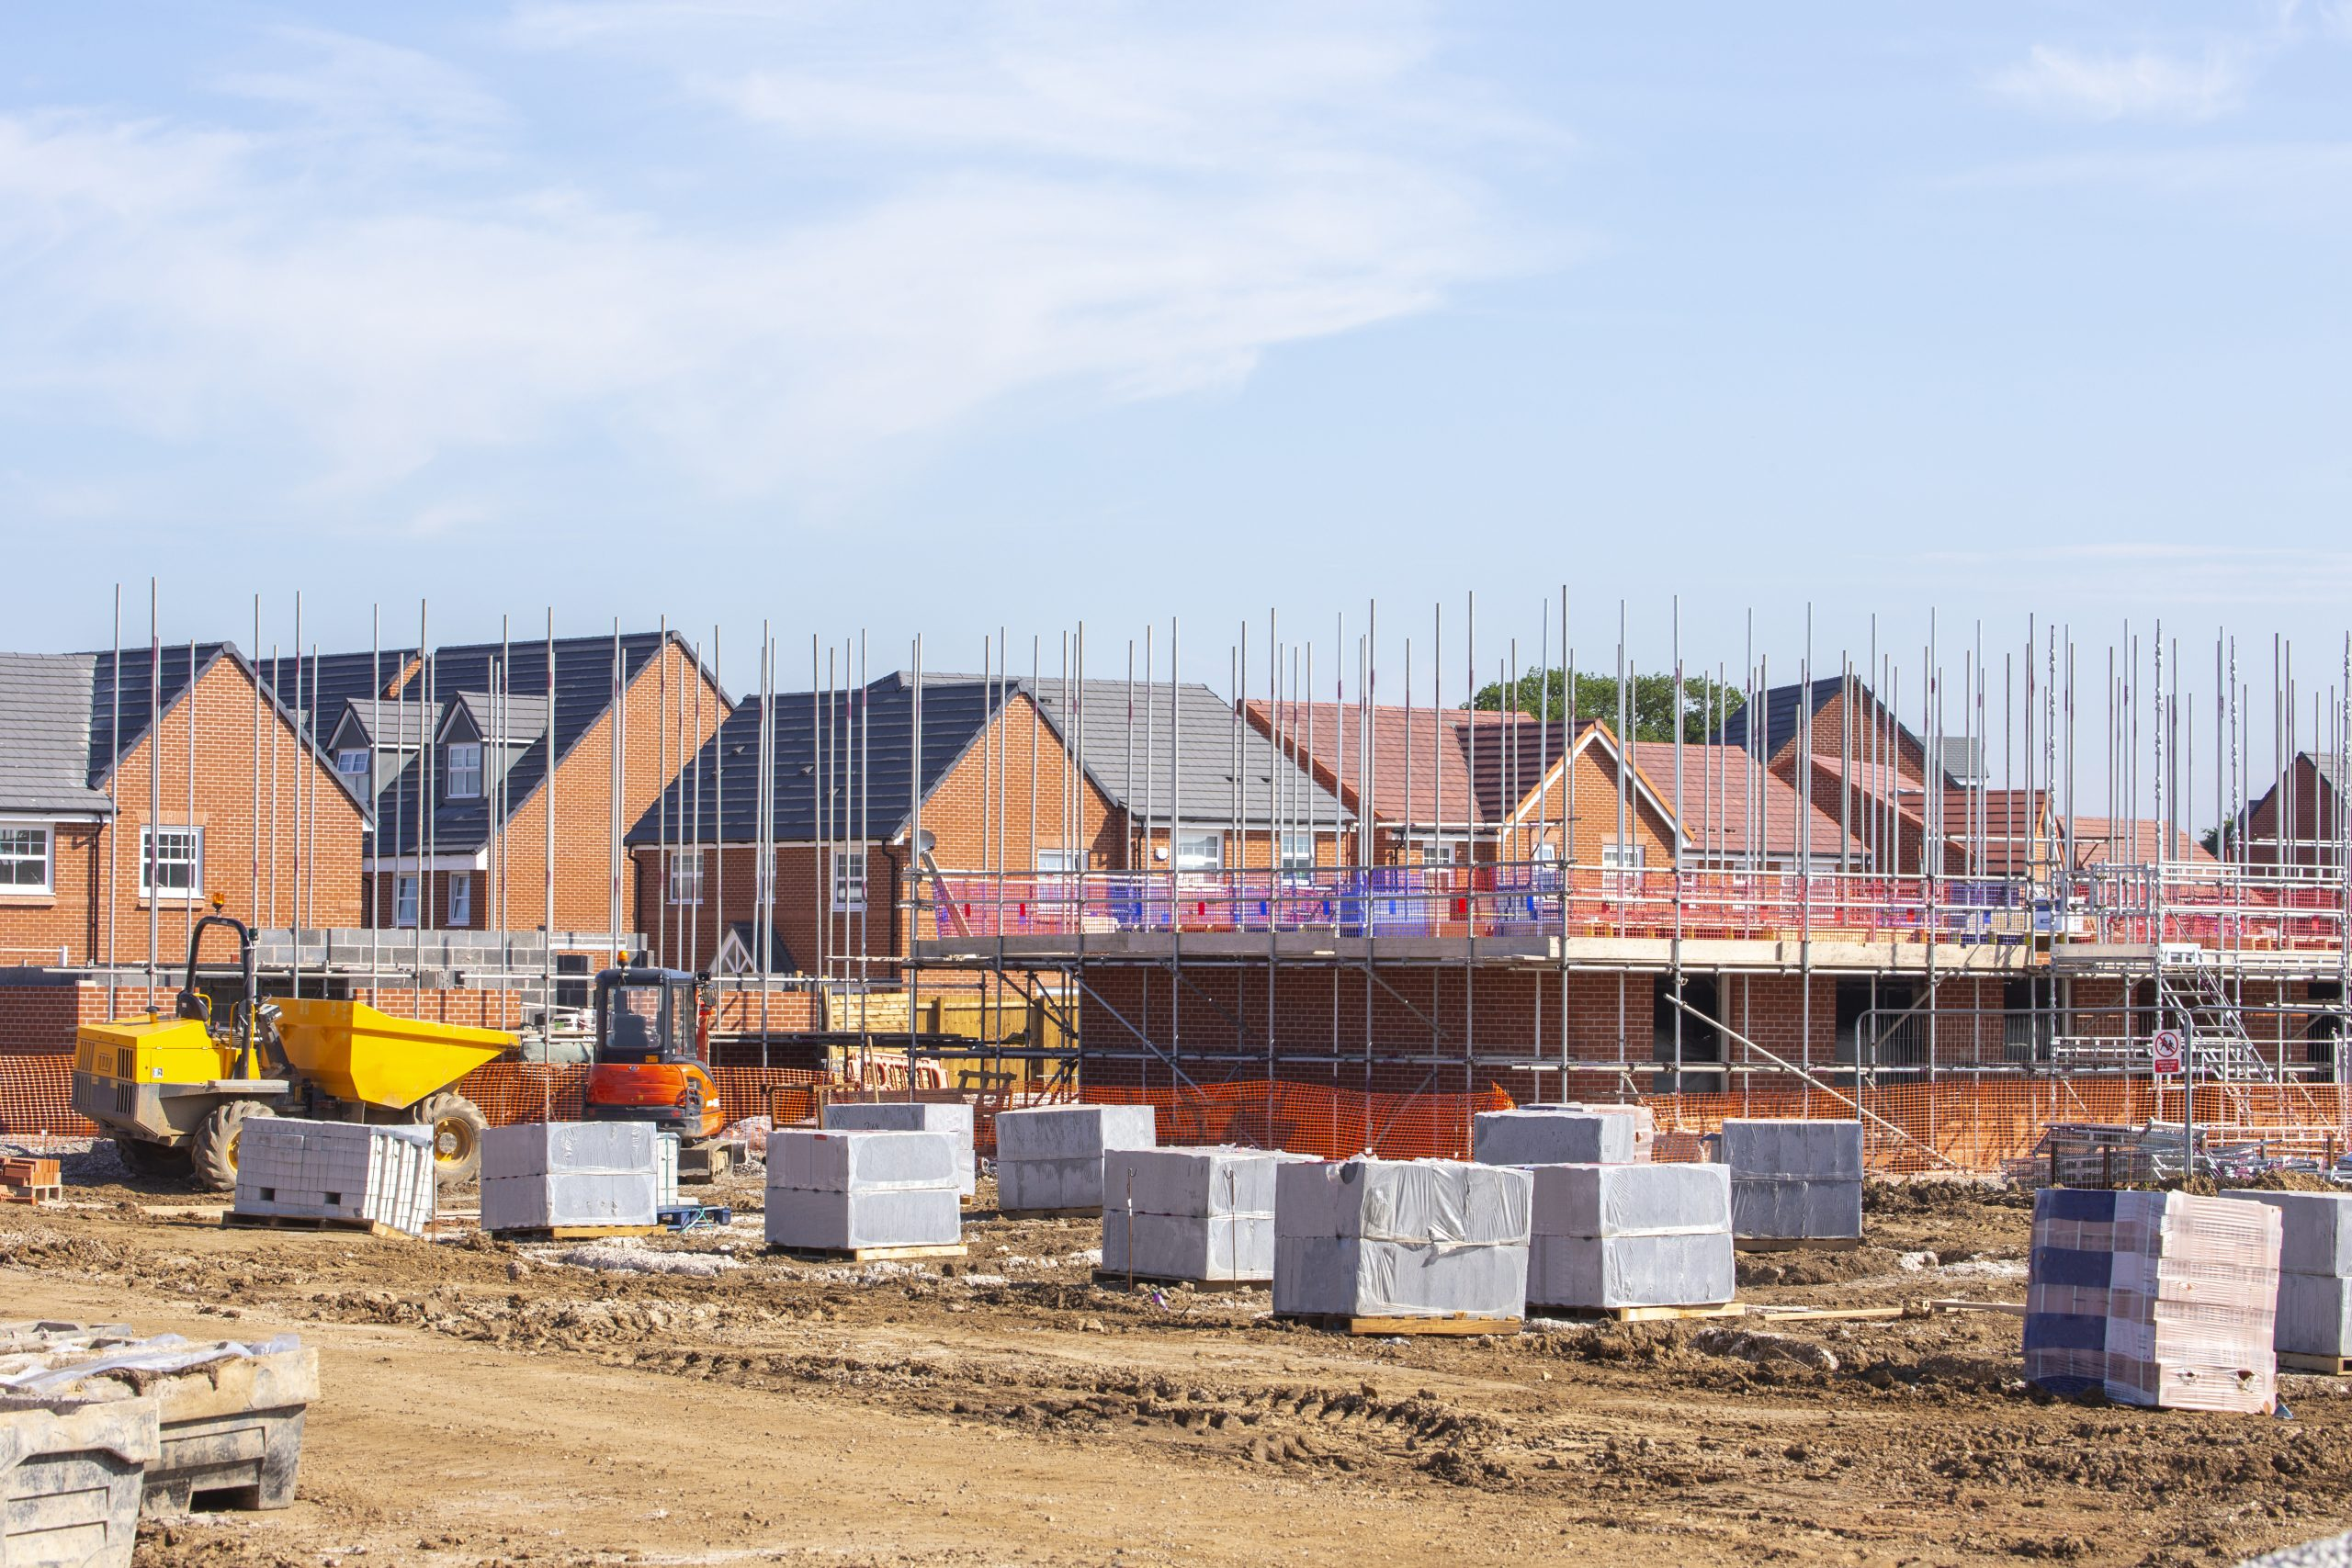 The Pros and Cons of the Build to Rent Model